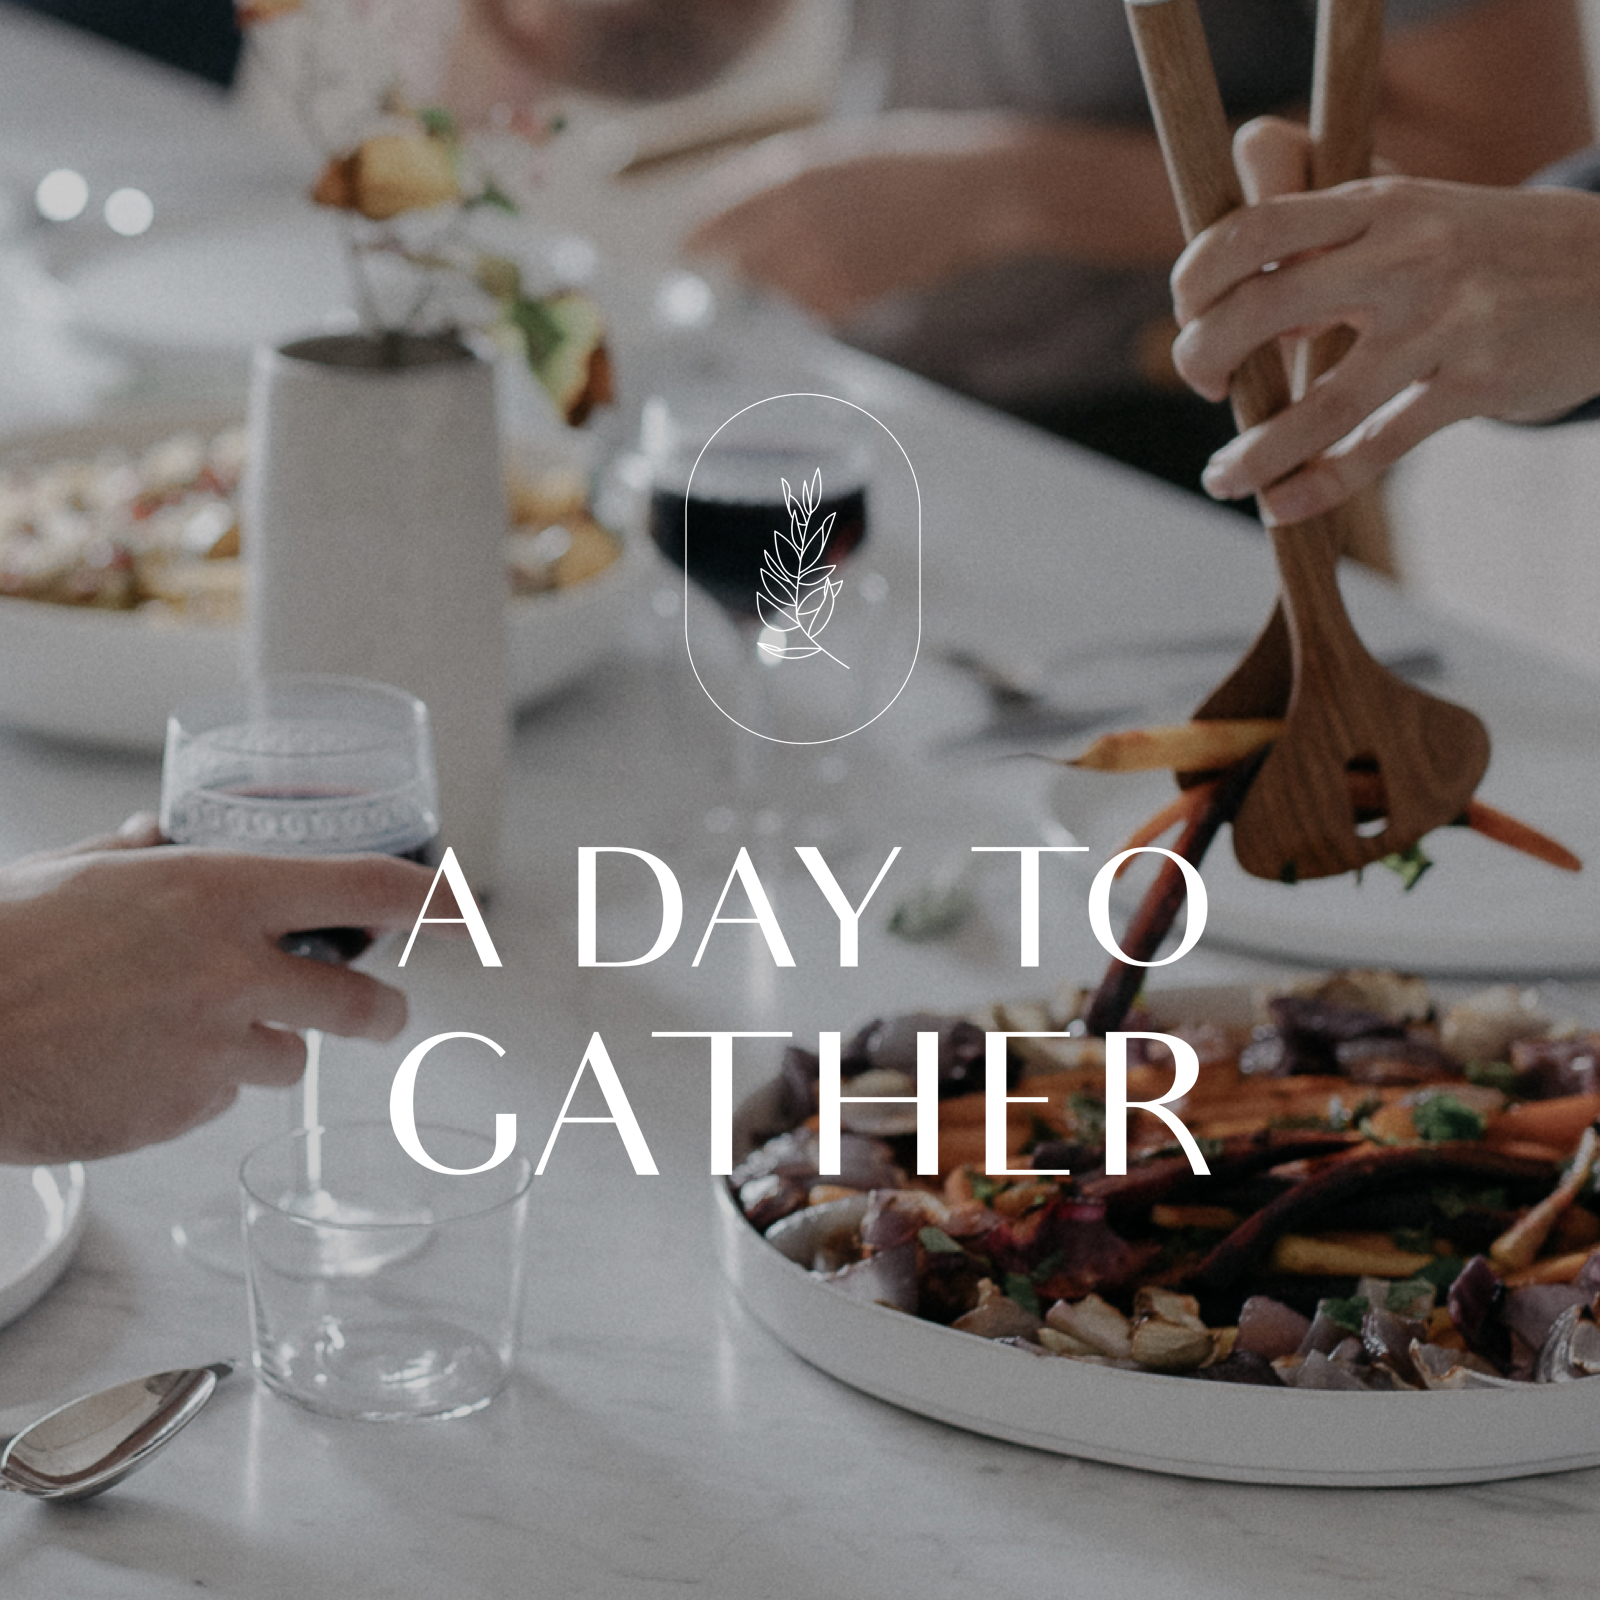 Gather_0126_IG_Image.jpg